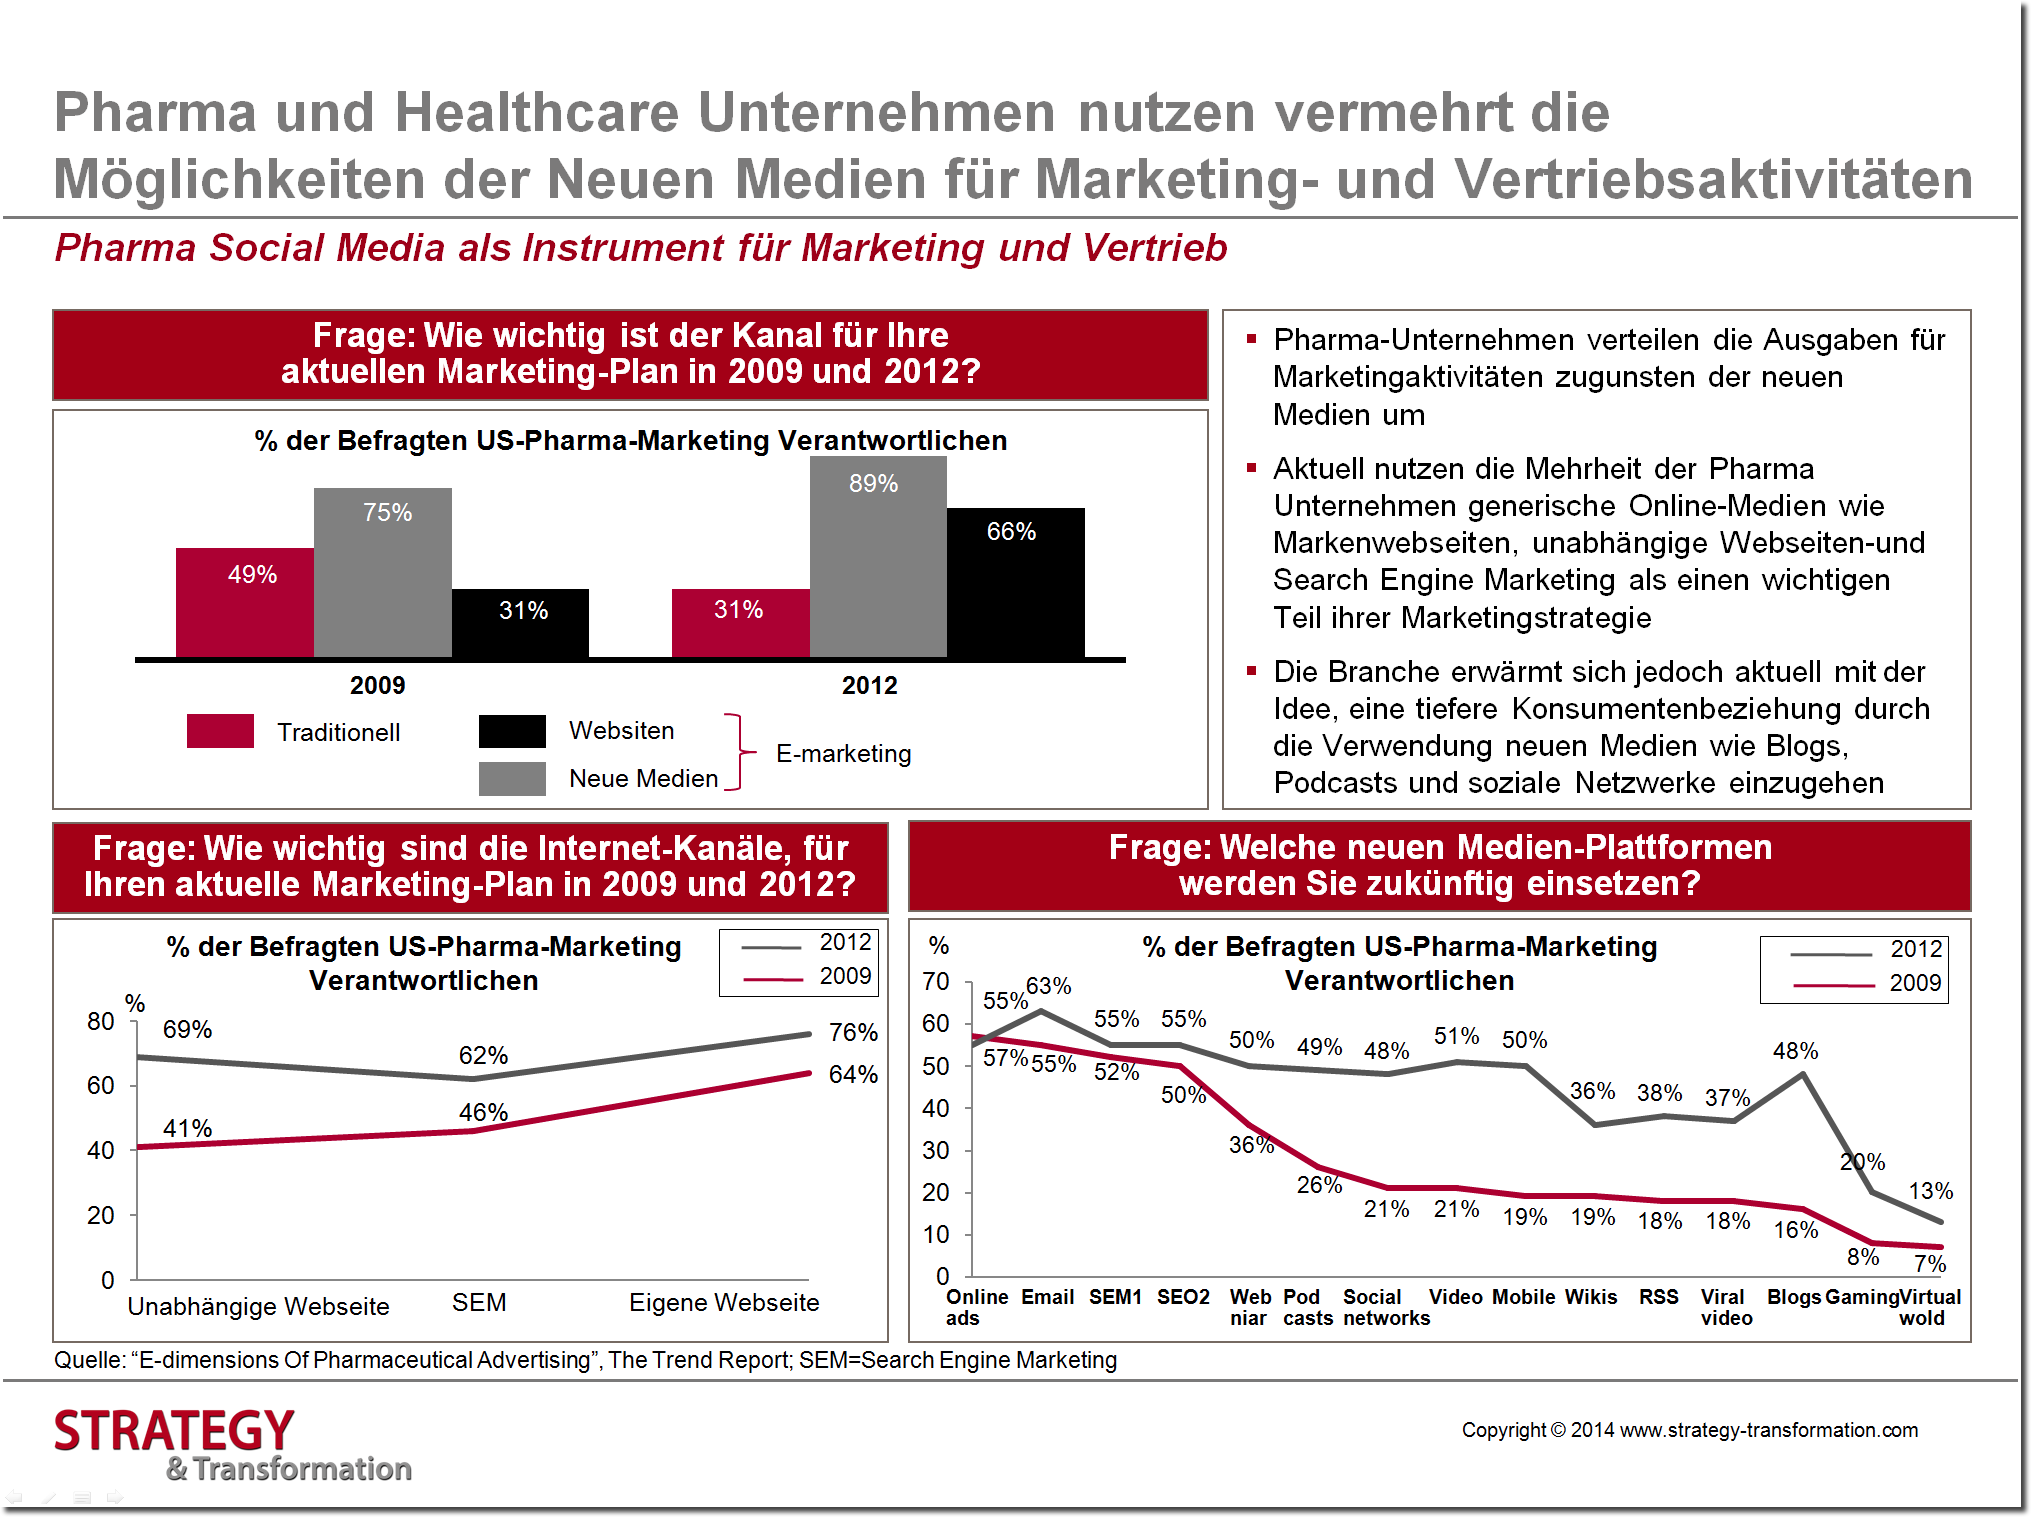 Health 2.0_Pharma Social Media als Instrument für Marketing und Vertrieb